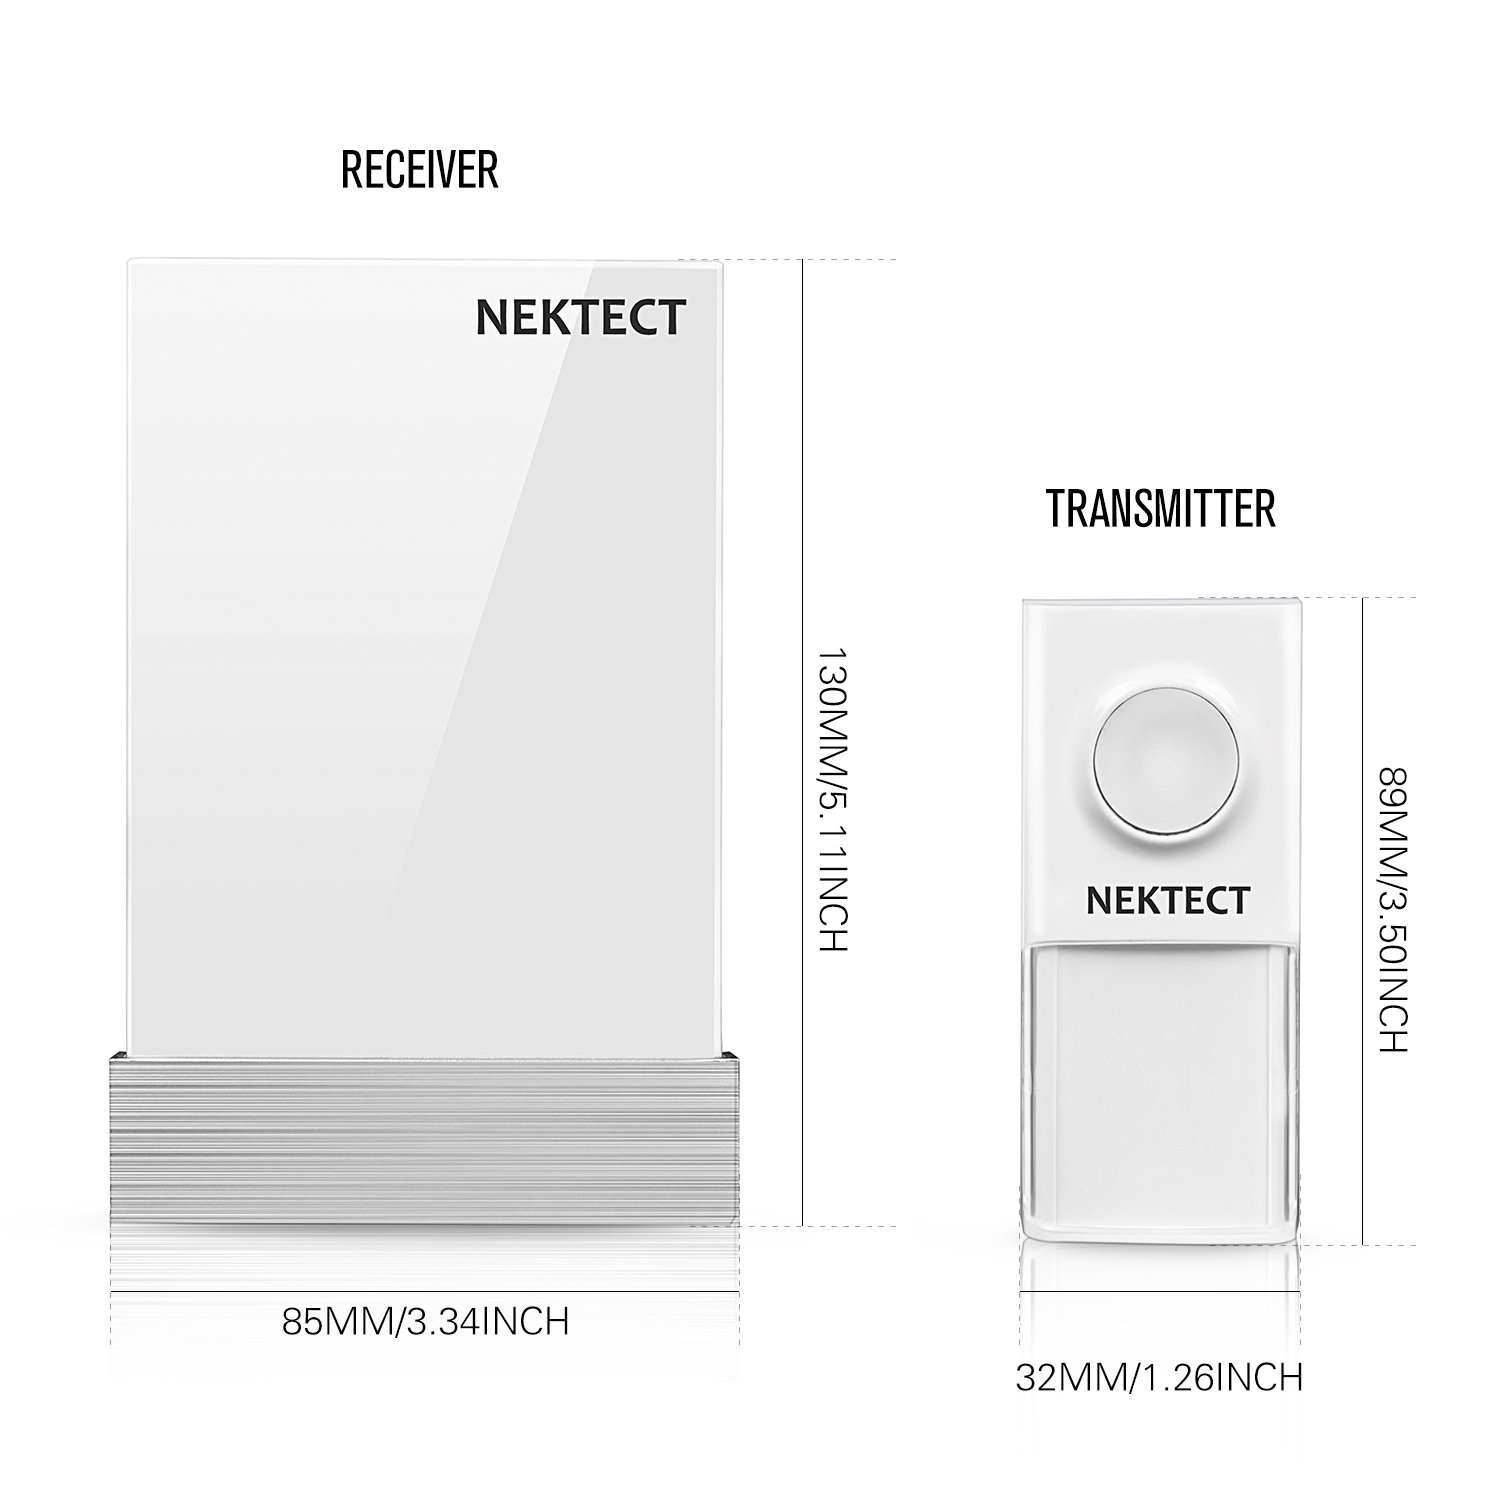 Wireless Doorbell, Nekteck Plug-in Doorbell Chime Battery-Free Kinetic Push Button Transmitter with Over 25 Musical Tones, 3 Volume Levels [150m Range / IP44 Water Proof] - [1 Button & 1 Plugin Chime] by Nekteck (Image #8)